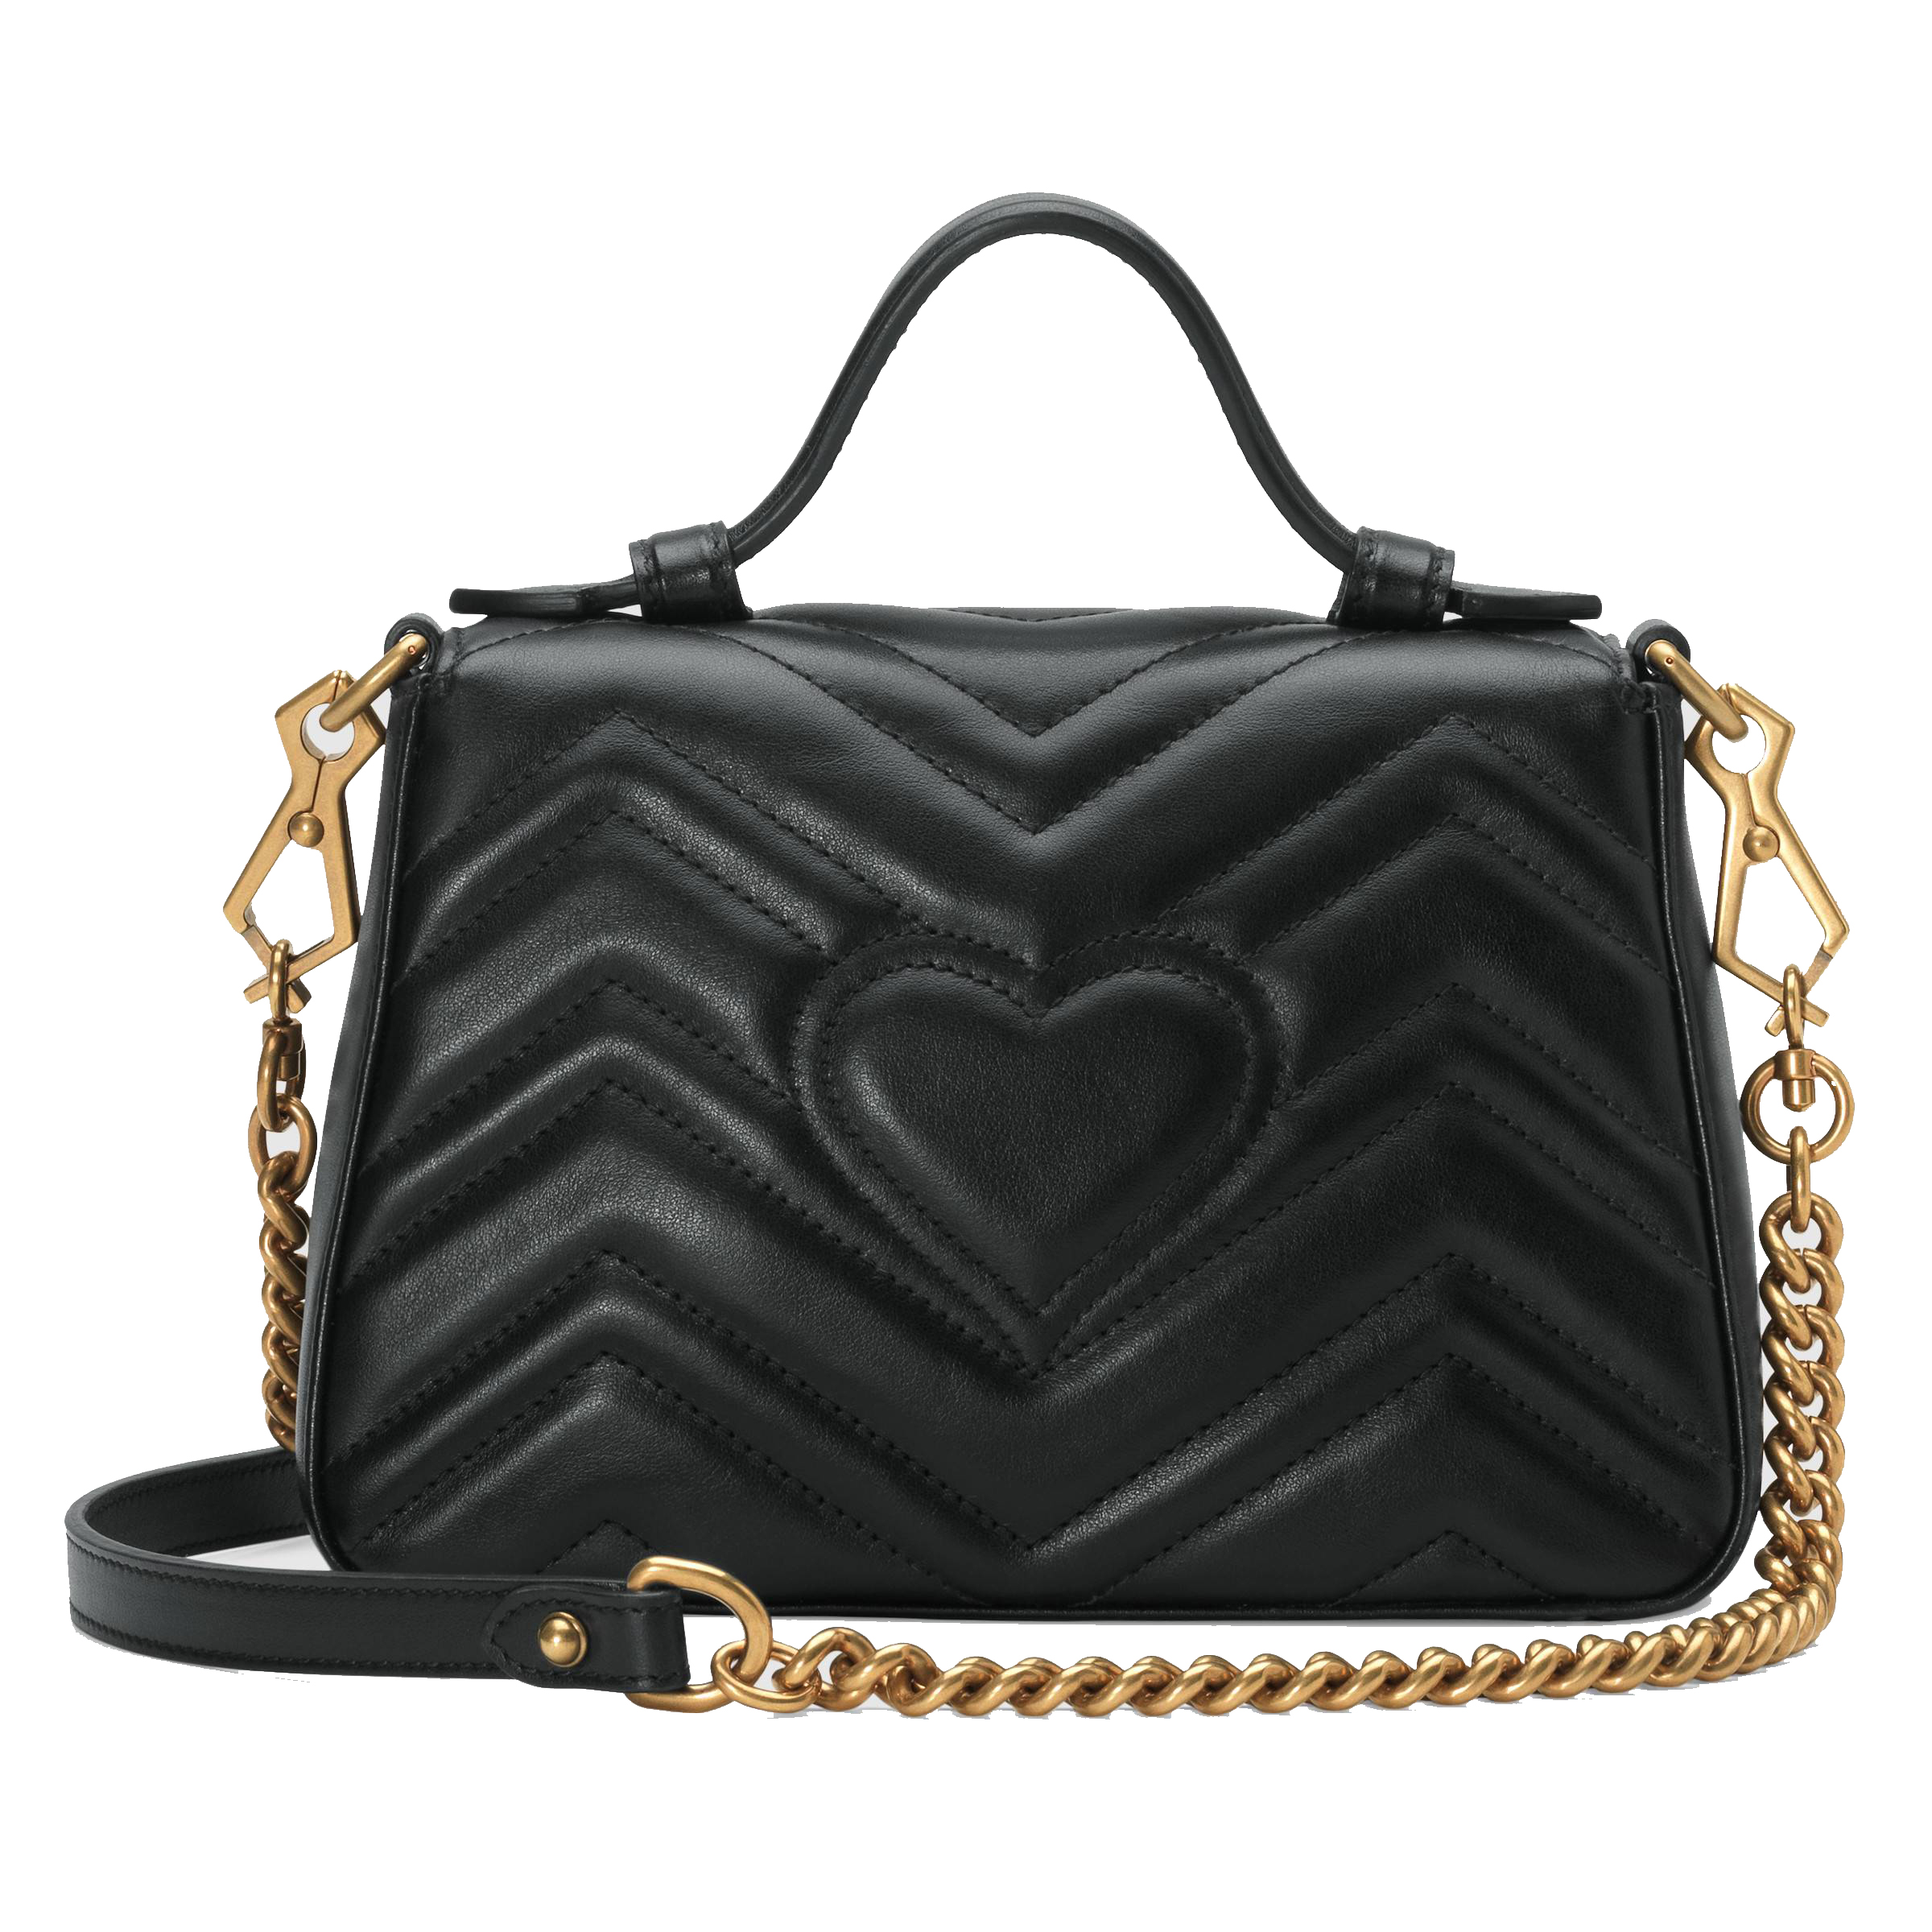 Fashion trend ladies single shoulder diagonal bag casual wallet high quality leather chain black red white